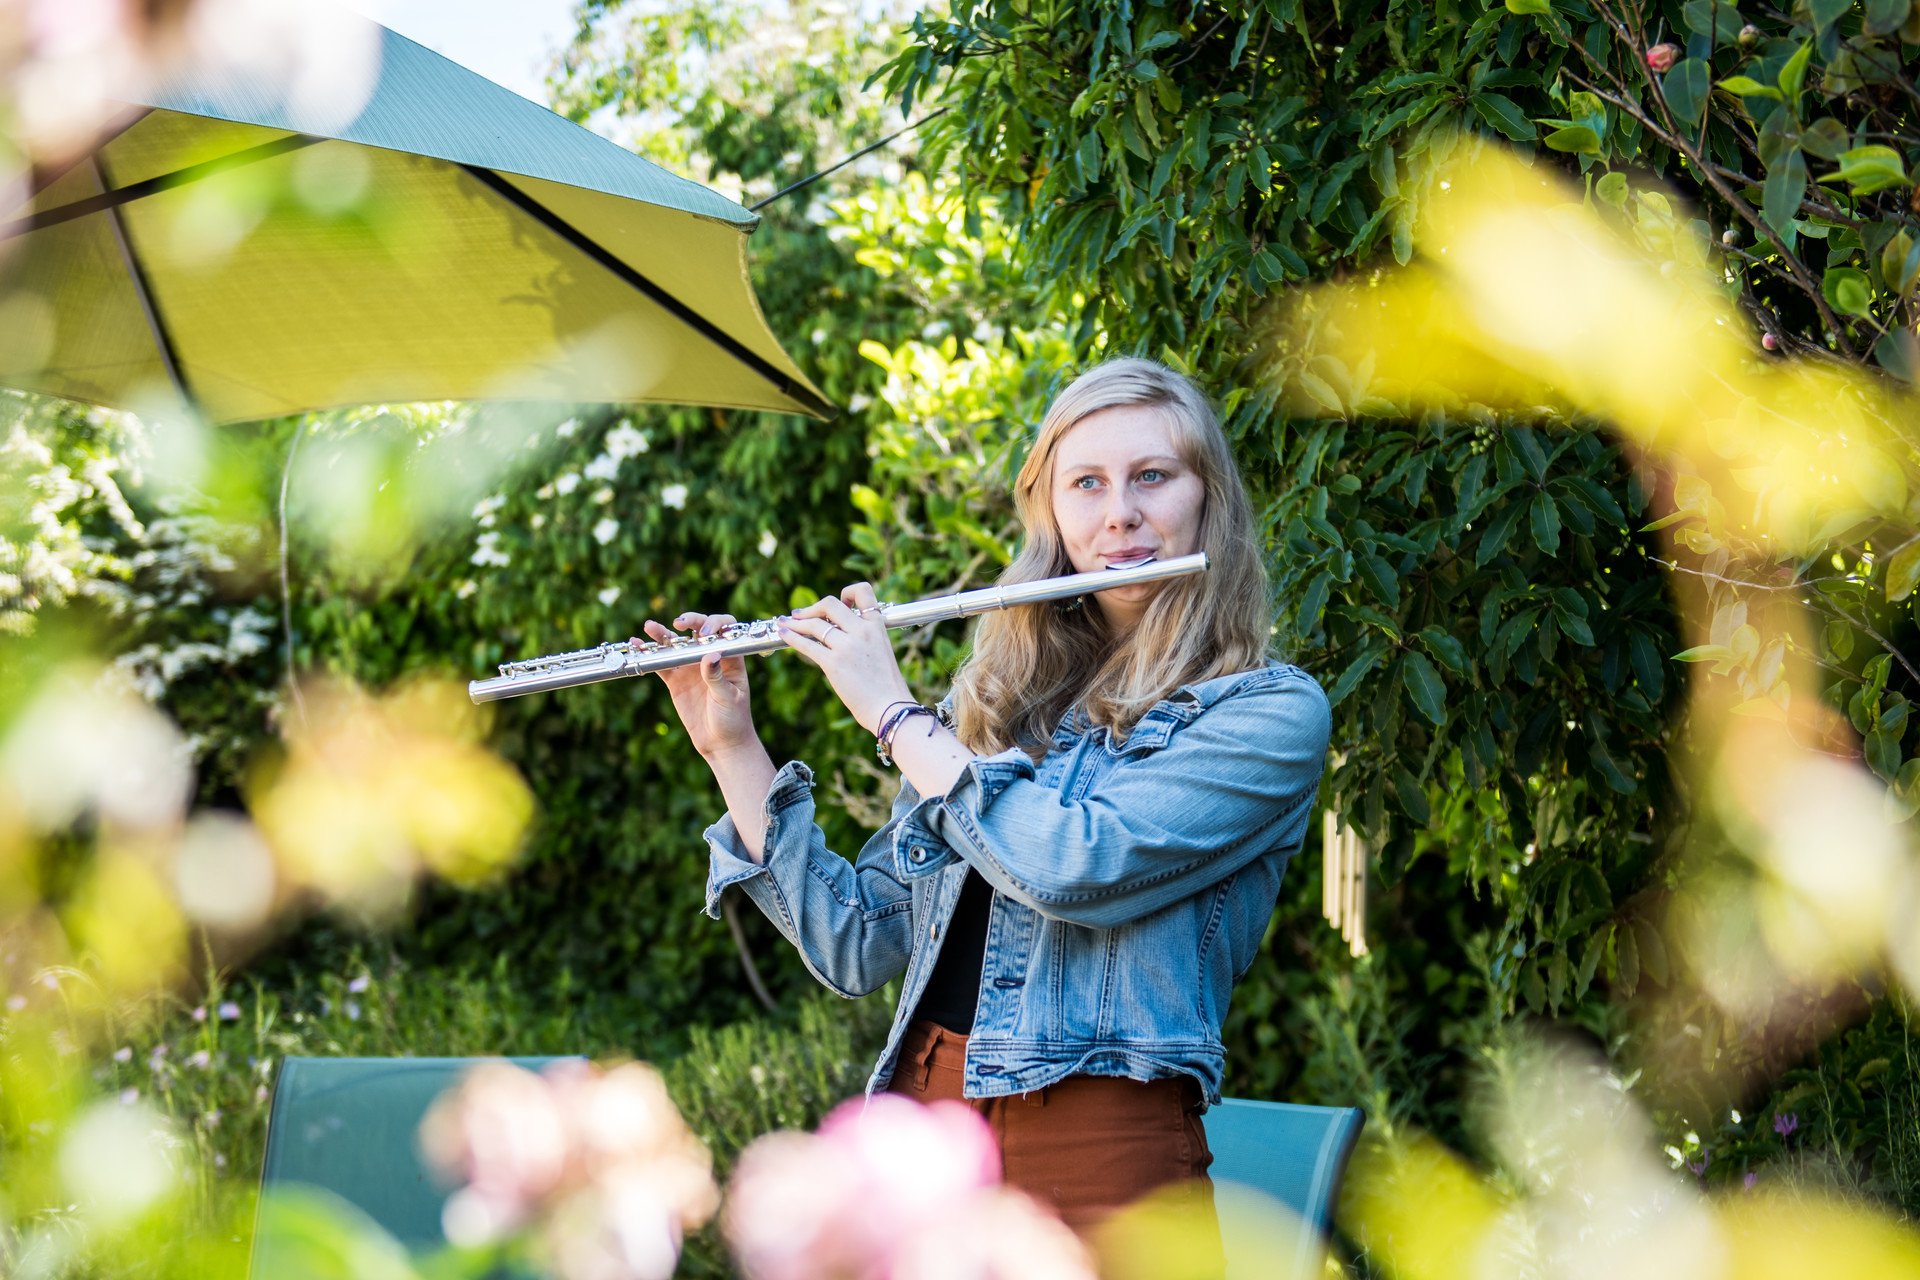 Genevieve Schweitzer, a junior in high school, plays the flute in her backyard on April 6, 2020.